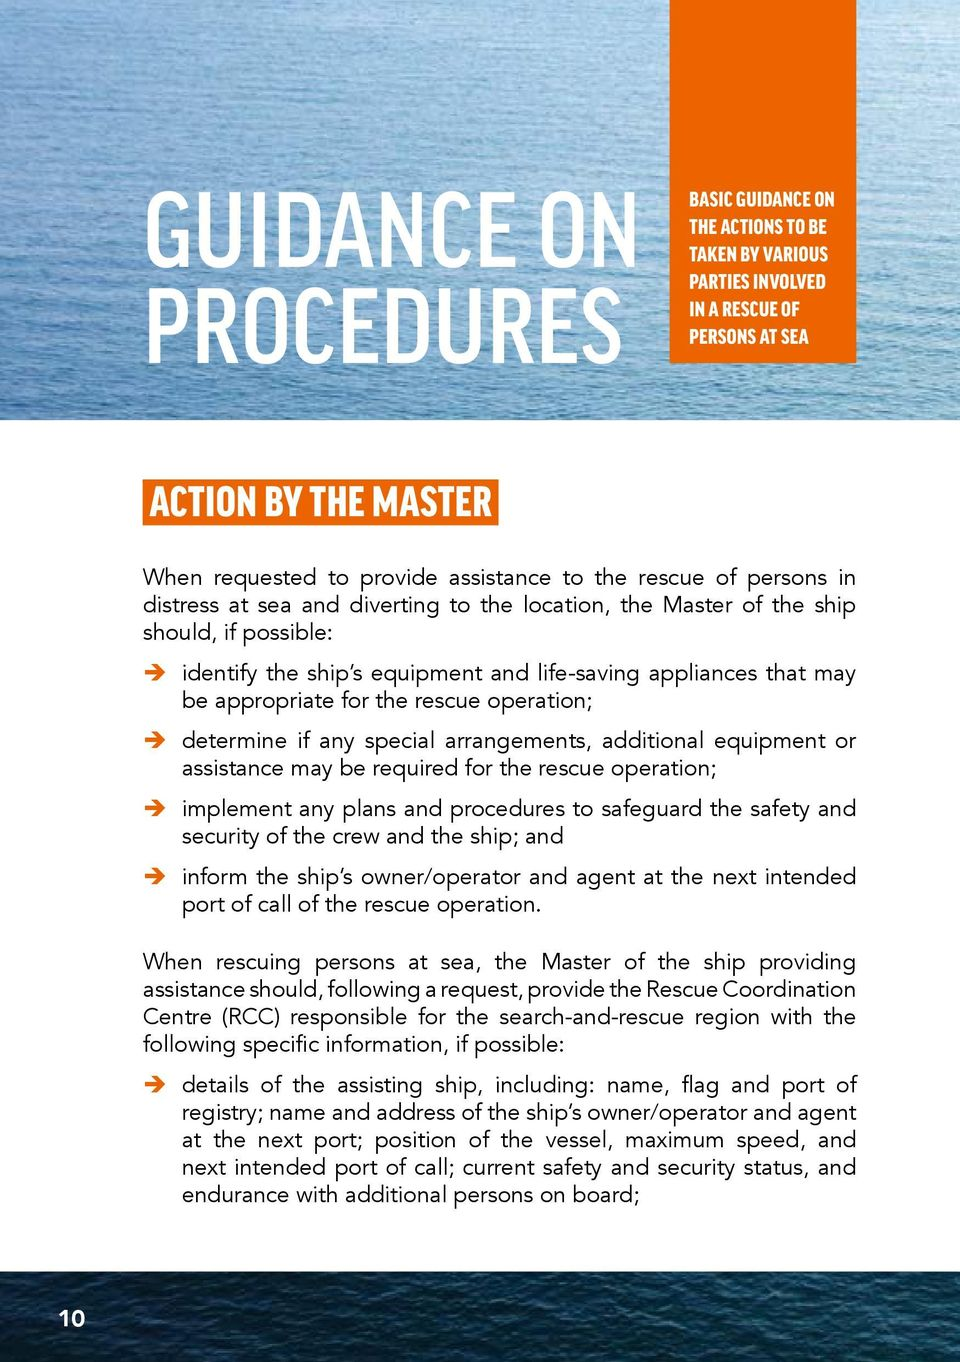 operation; determine if any special arrangements, additional equipment or assistance may be required for the rescue operation; implement any plans and procedures to safeguard the safety and security